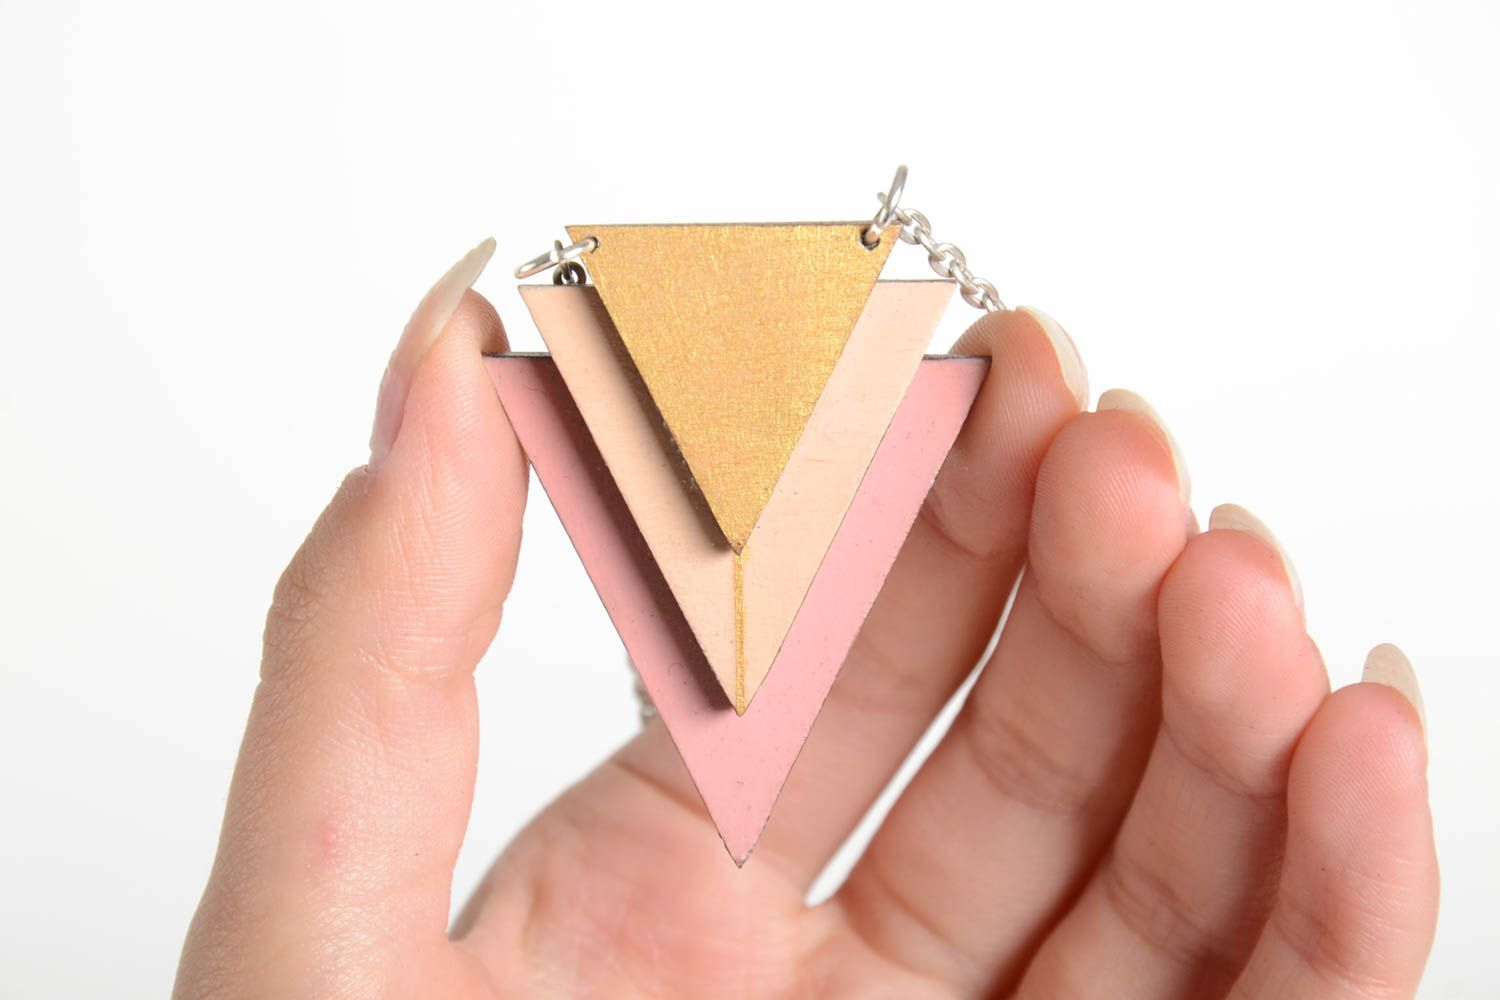 Unusual handmade wooden pendant wood craft costume jewelry gifts for her photo 5